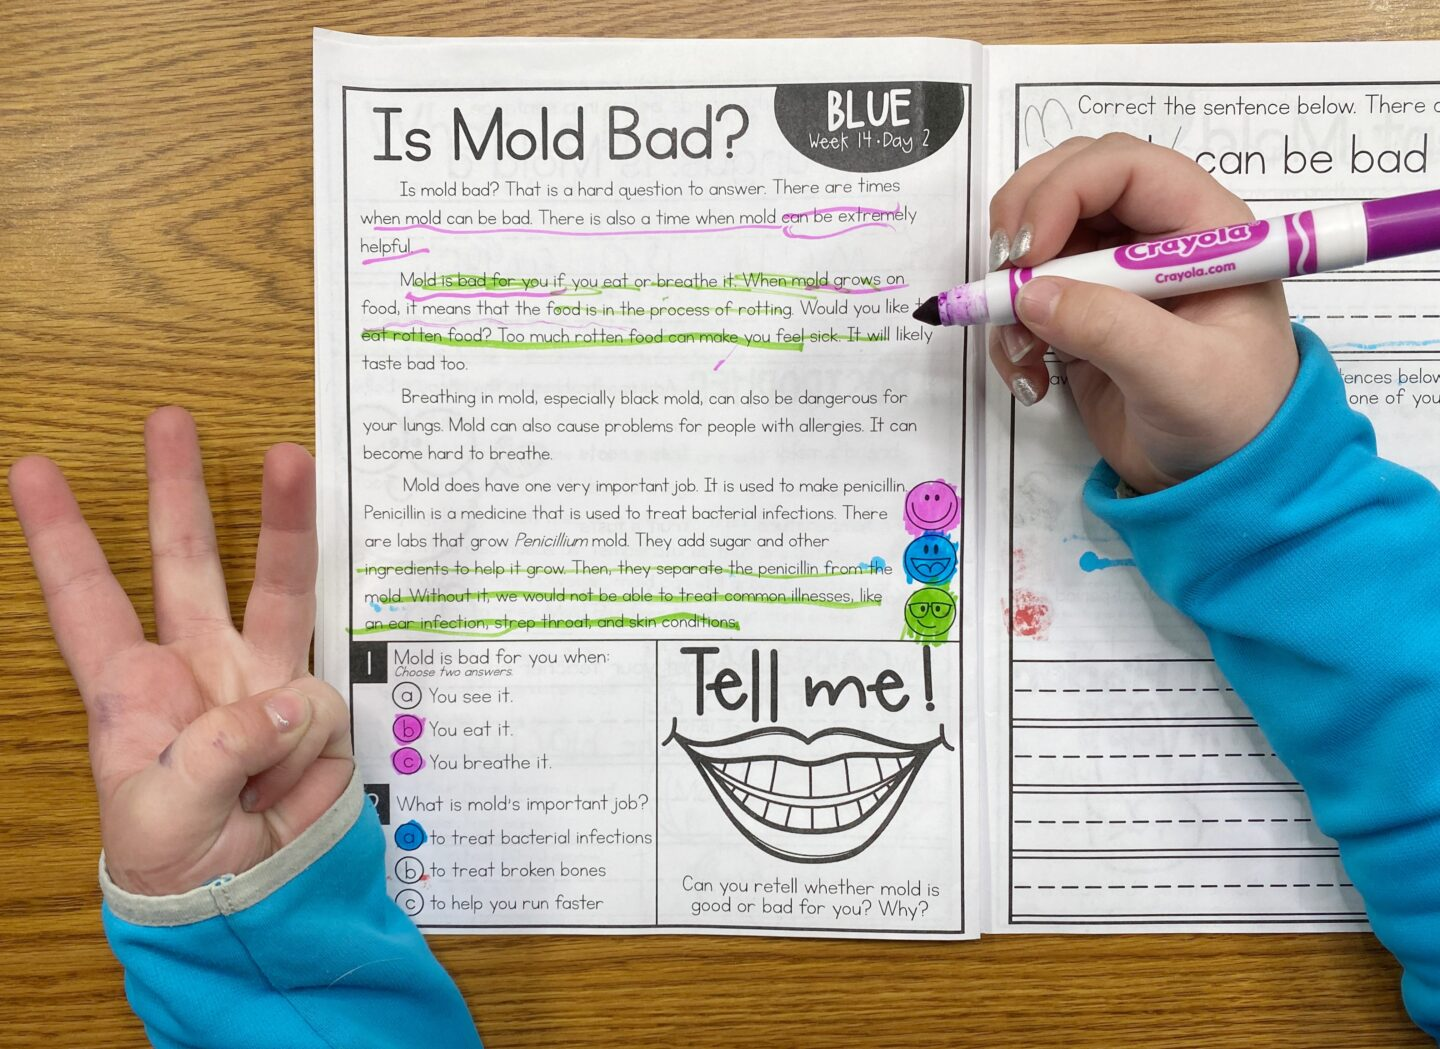 Image of a student holding a marker in one hand and holding up three fingers with the other hand while reading Is Mold Bad? From the Primary Gal's Resource Room Reading Series